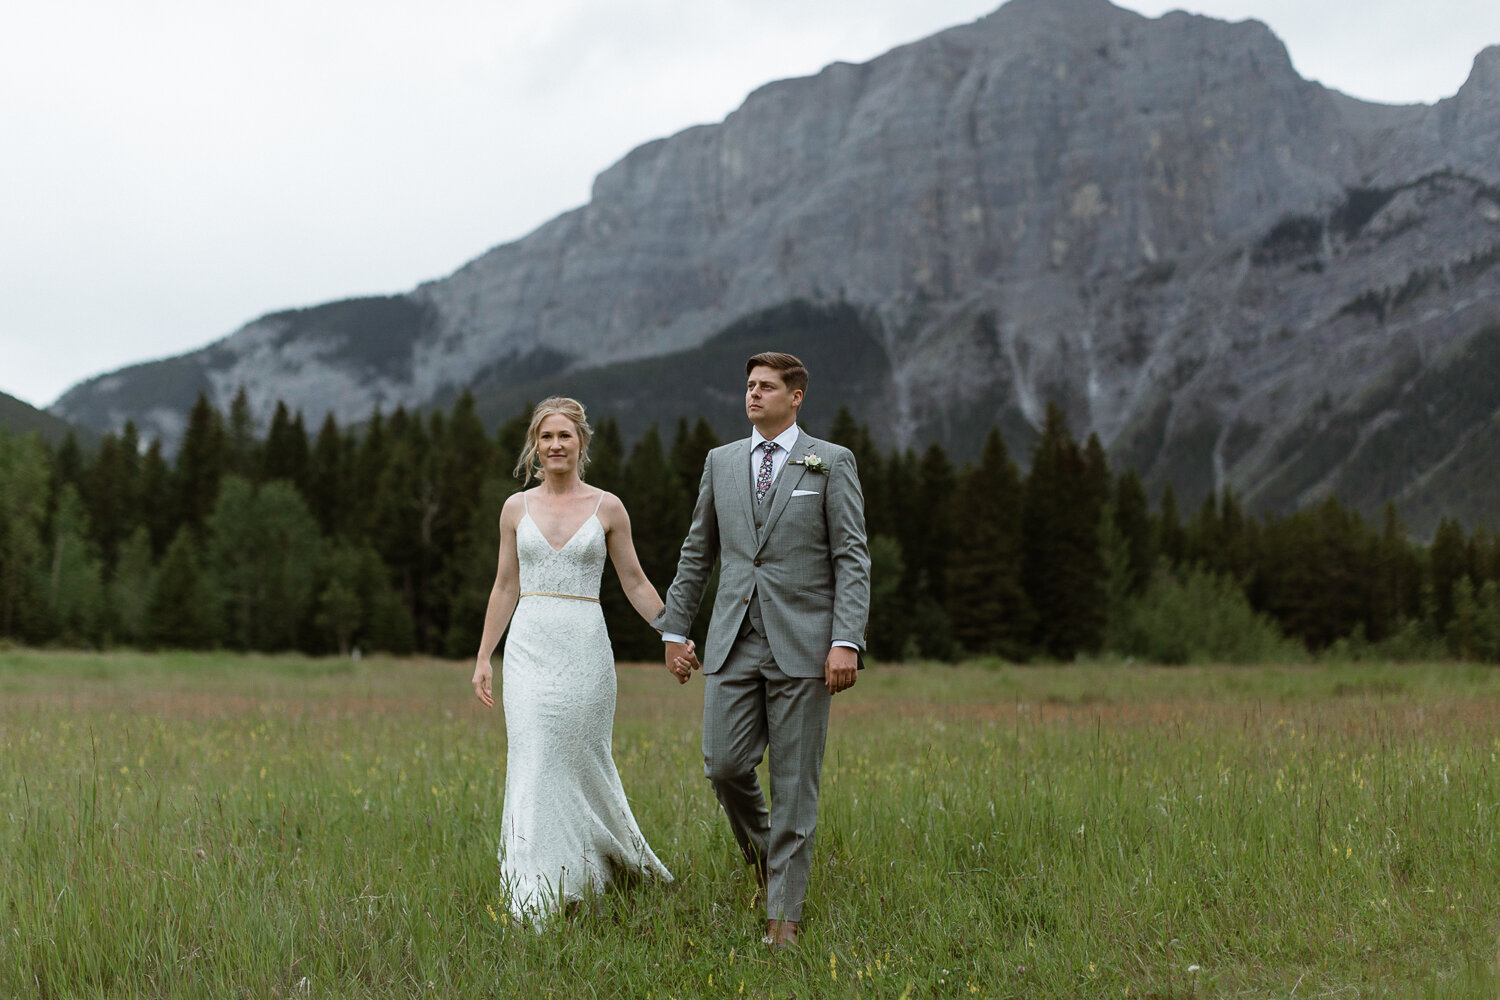 102-Canmore-Alberta-Real-Wedding-Best-Wedding-Photographers-175.JPG